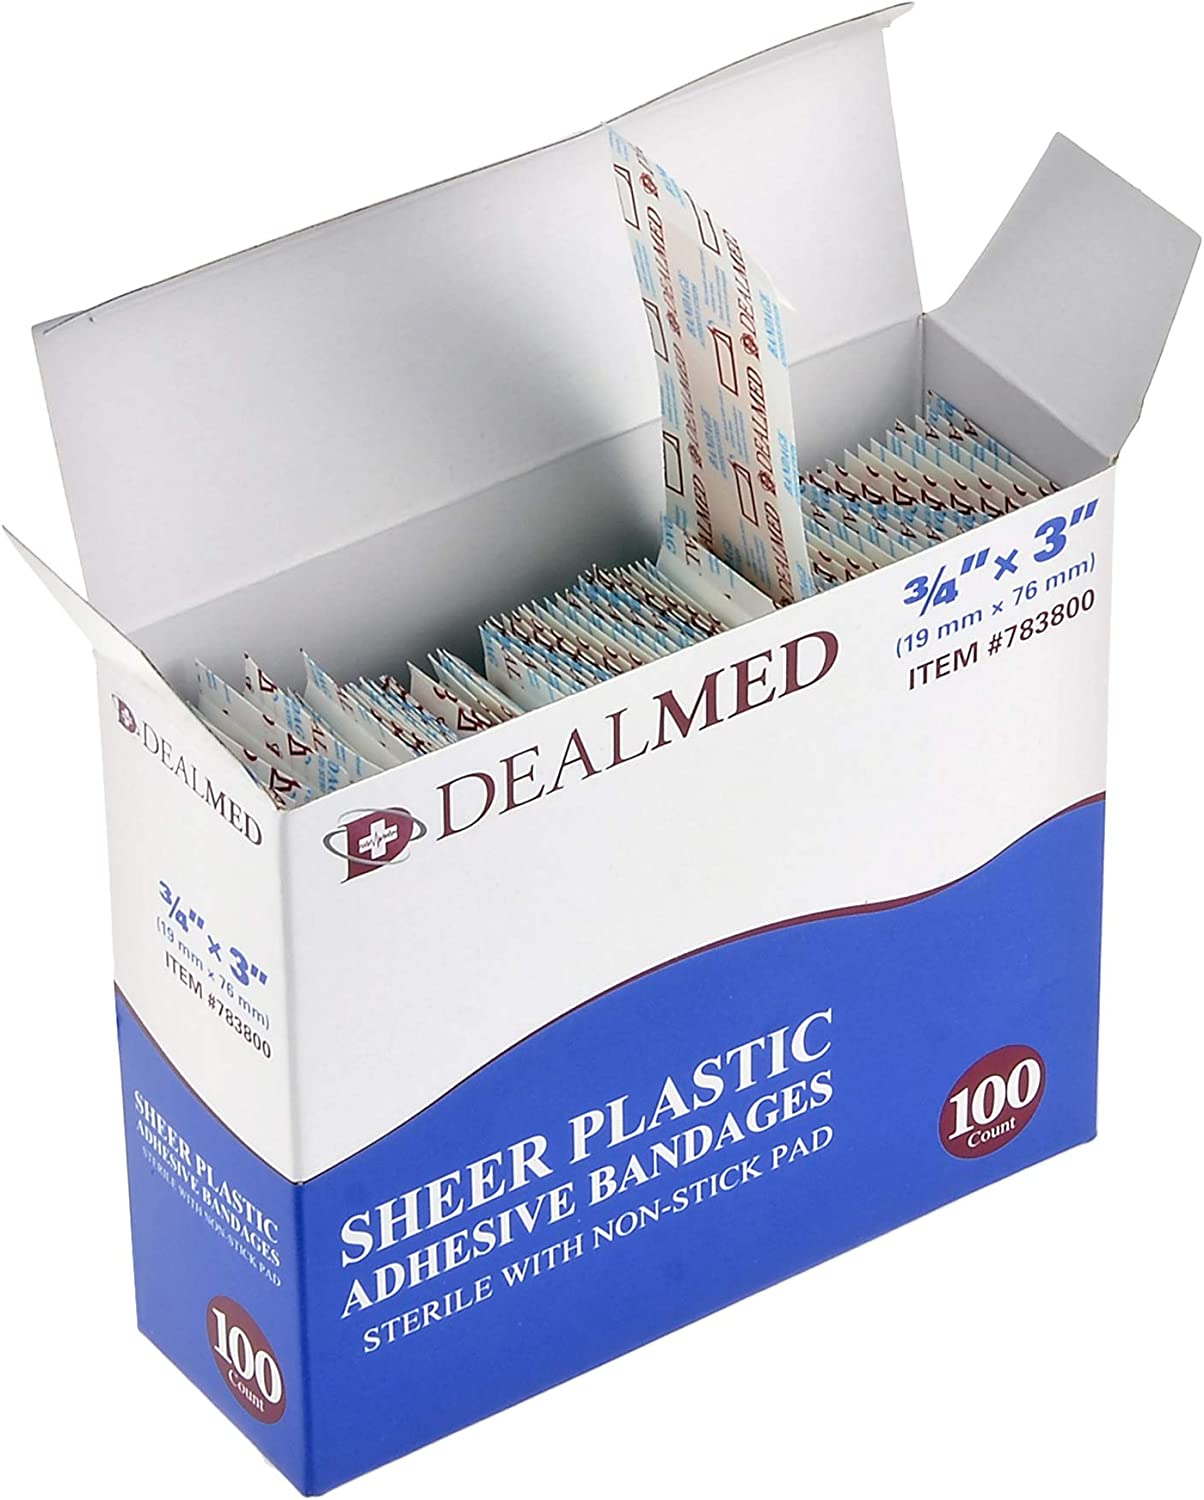 1 Pack 3 x 3//4 Dealmed Sheer Plastic Flexible Adhesive Bandages 100 Count Sterile with Non-Stick Pad